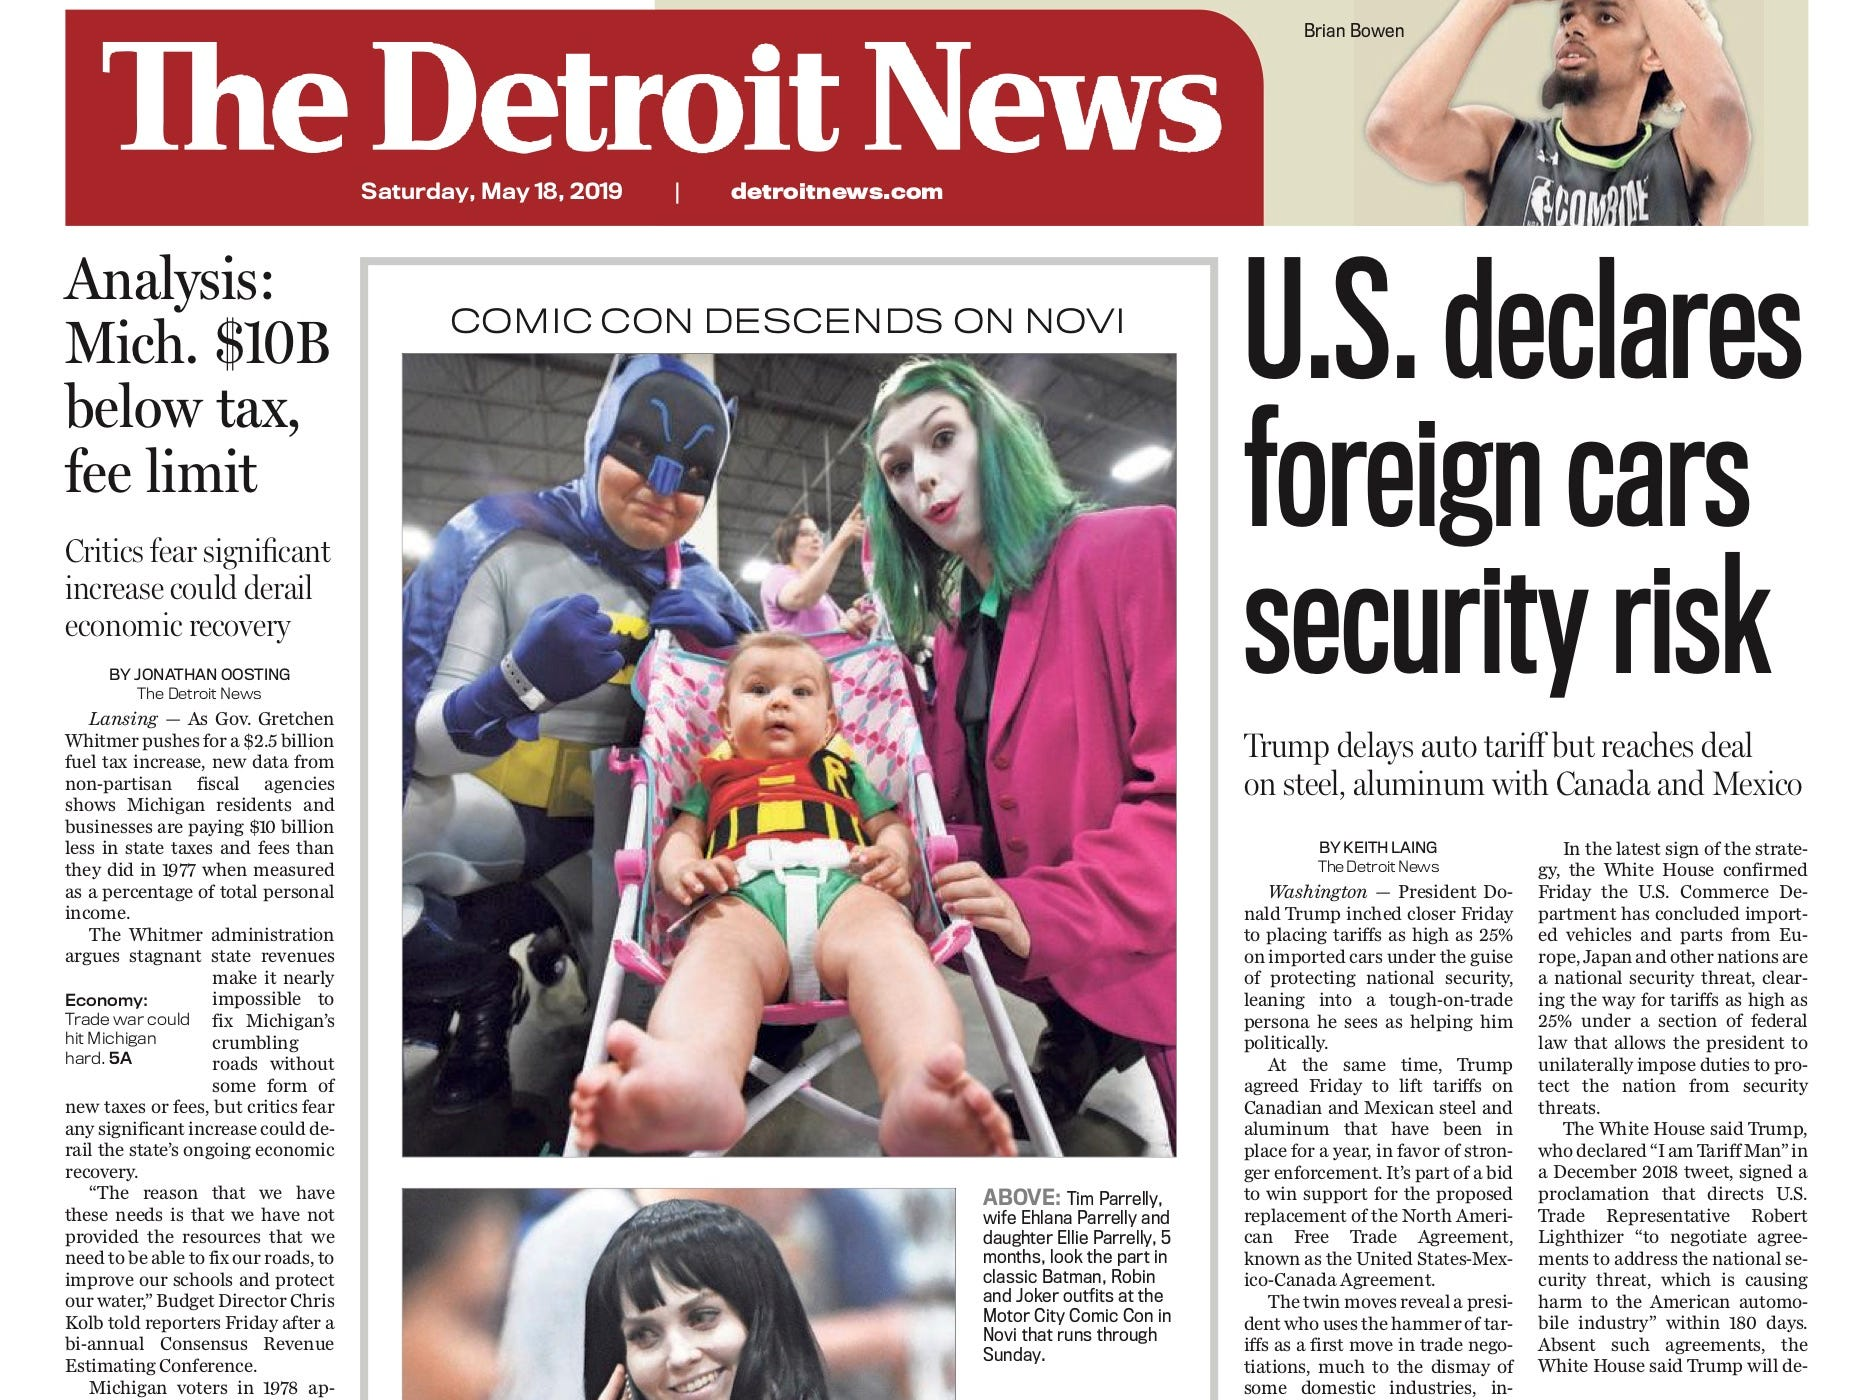 The front page of the Detroit News on May 18, 2019